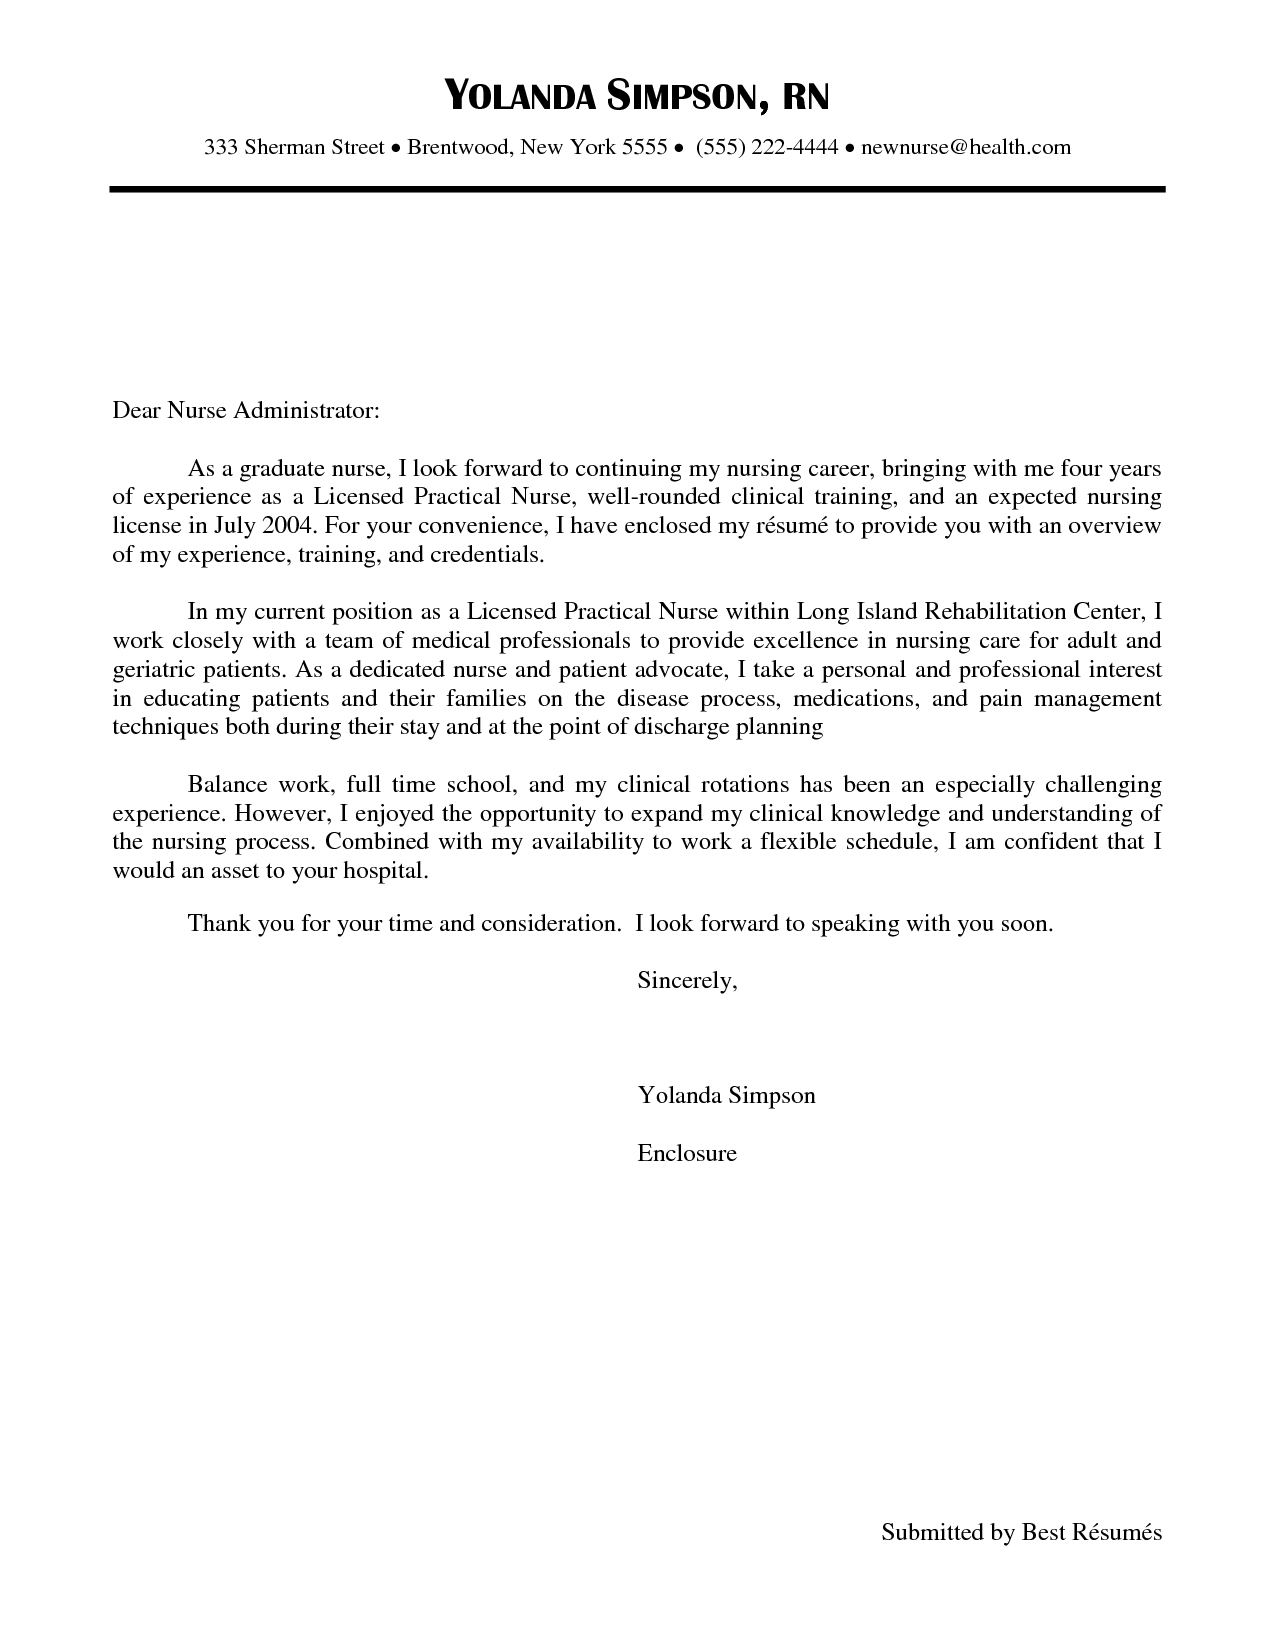 Lpn Cover Letter Template - New Grad Nurse Cover Letter Example